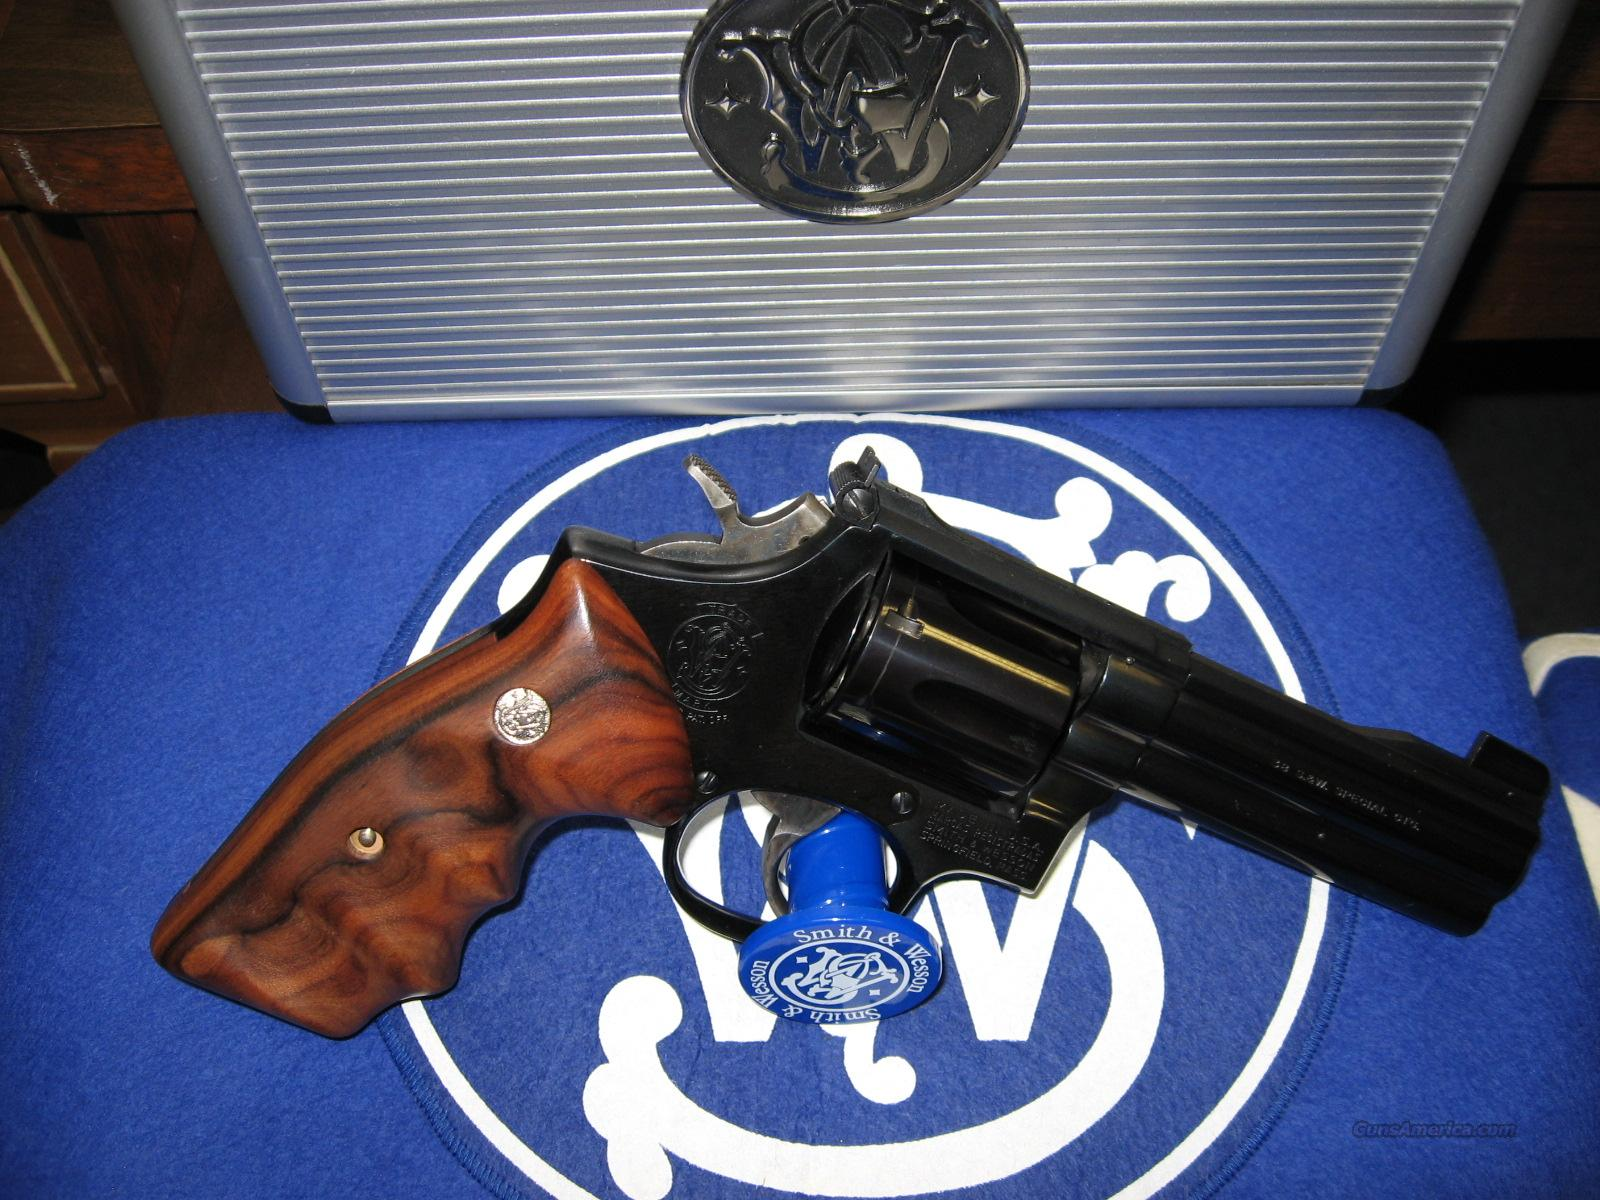 S&W Performance Center Match  Guns > Pistols > Smith & Wesson Revolvers > Performance Center